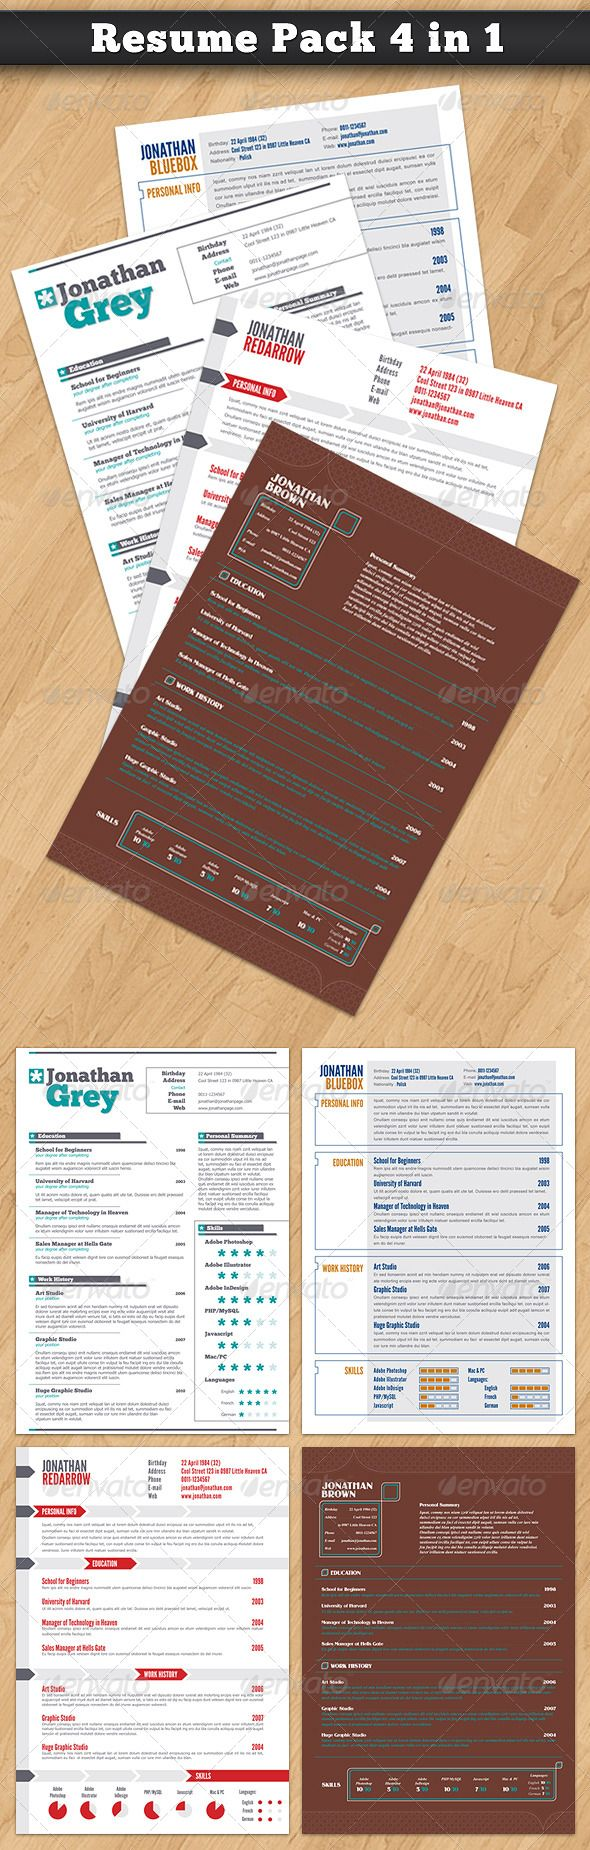 7 Best Functional Resume Template Images On Pinterest Functional